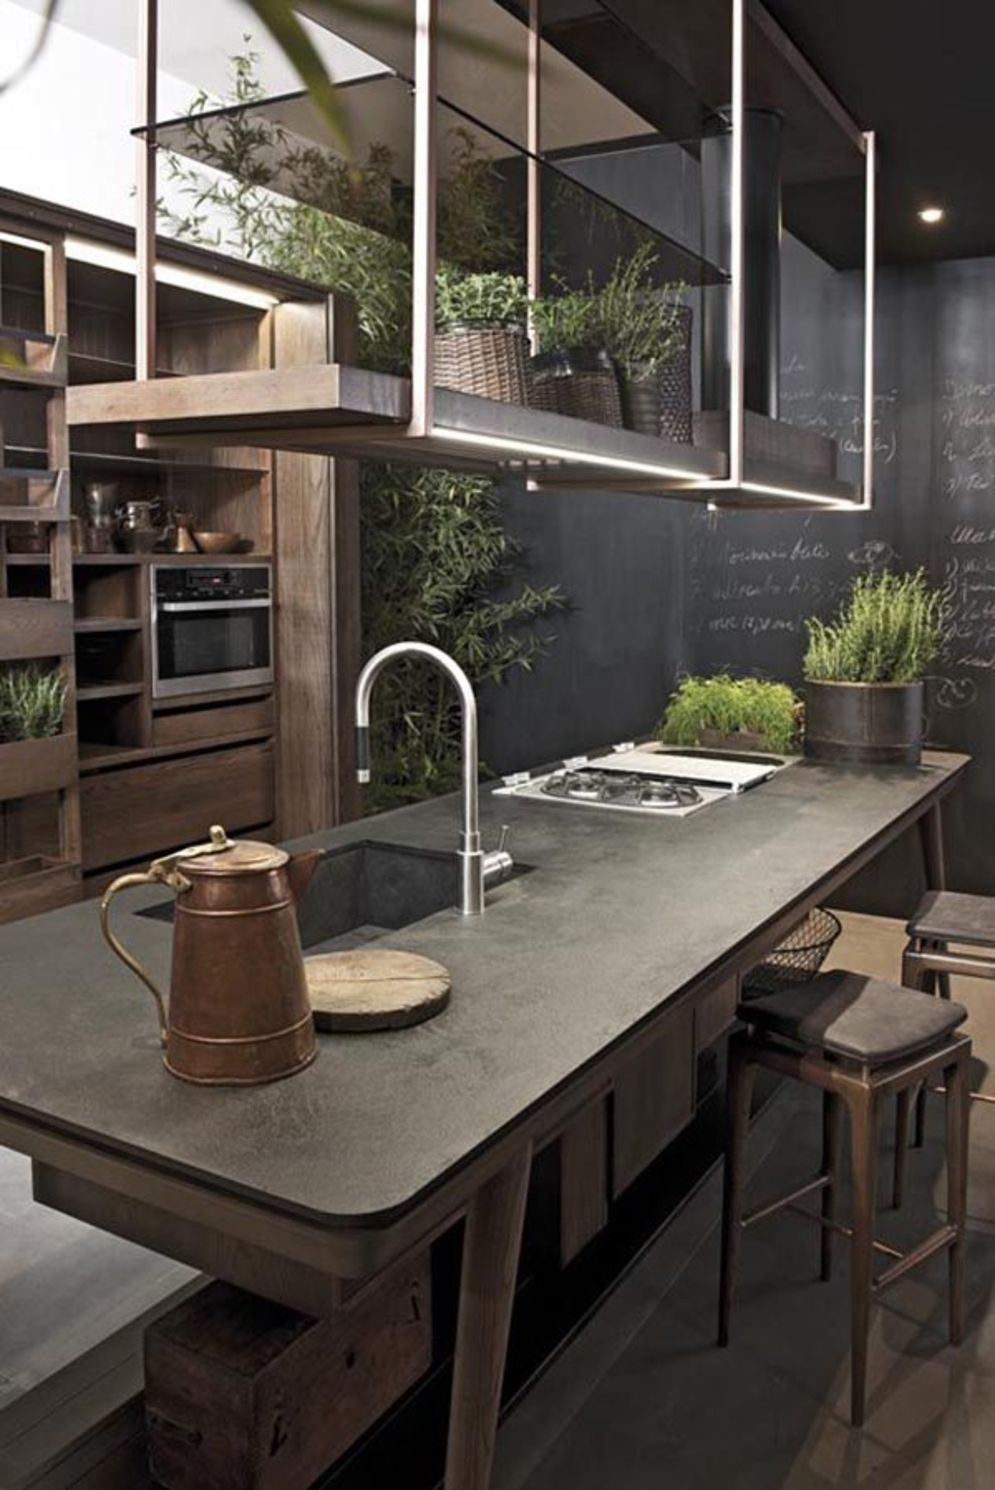 Modern kitchen updates using efficient concrete benchtops to show sturdier interior display Image 22